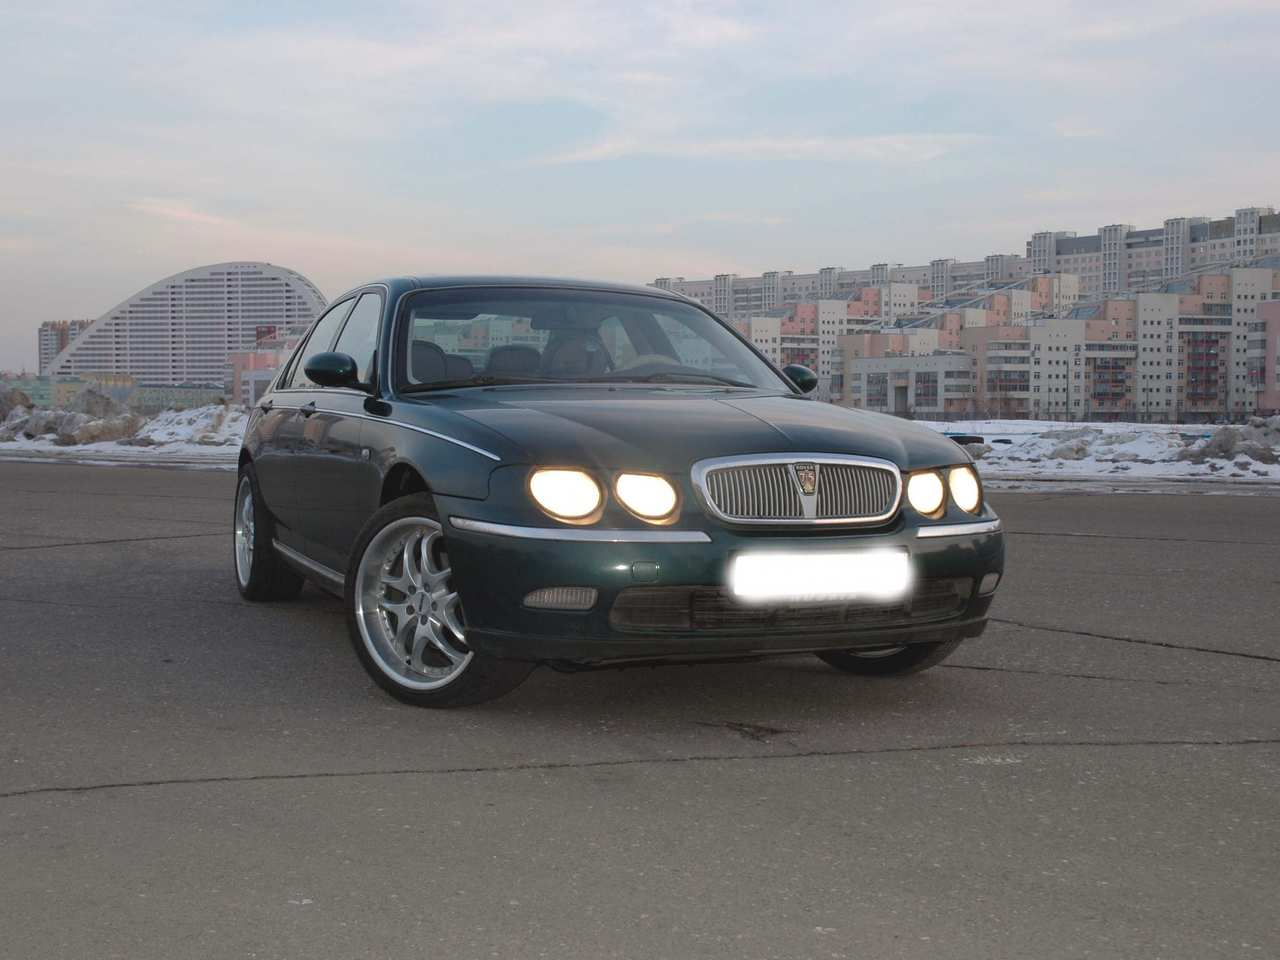 used 2000 rover 75 photos 2500cc gasoline ff automatic for sale. Black Bedroom Furniture Sets. Home Design Ideas